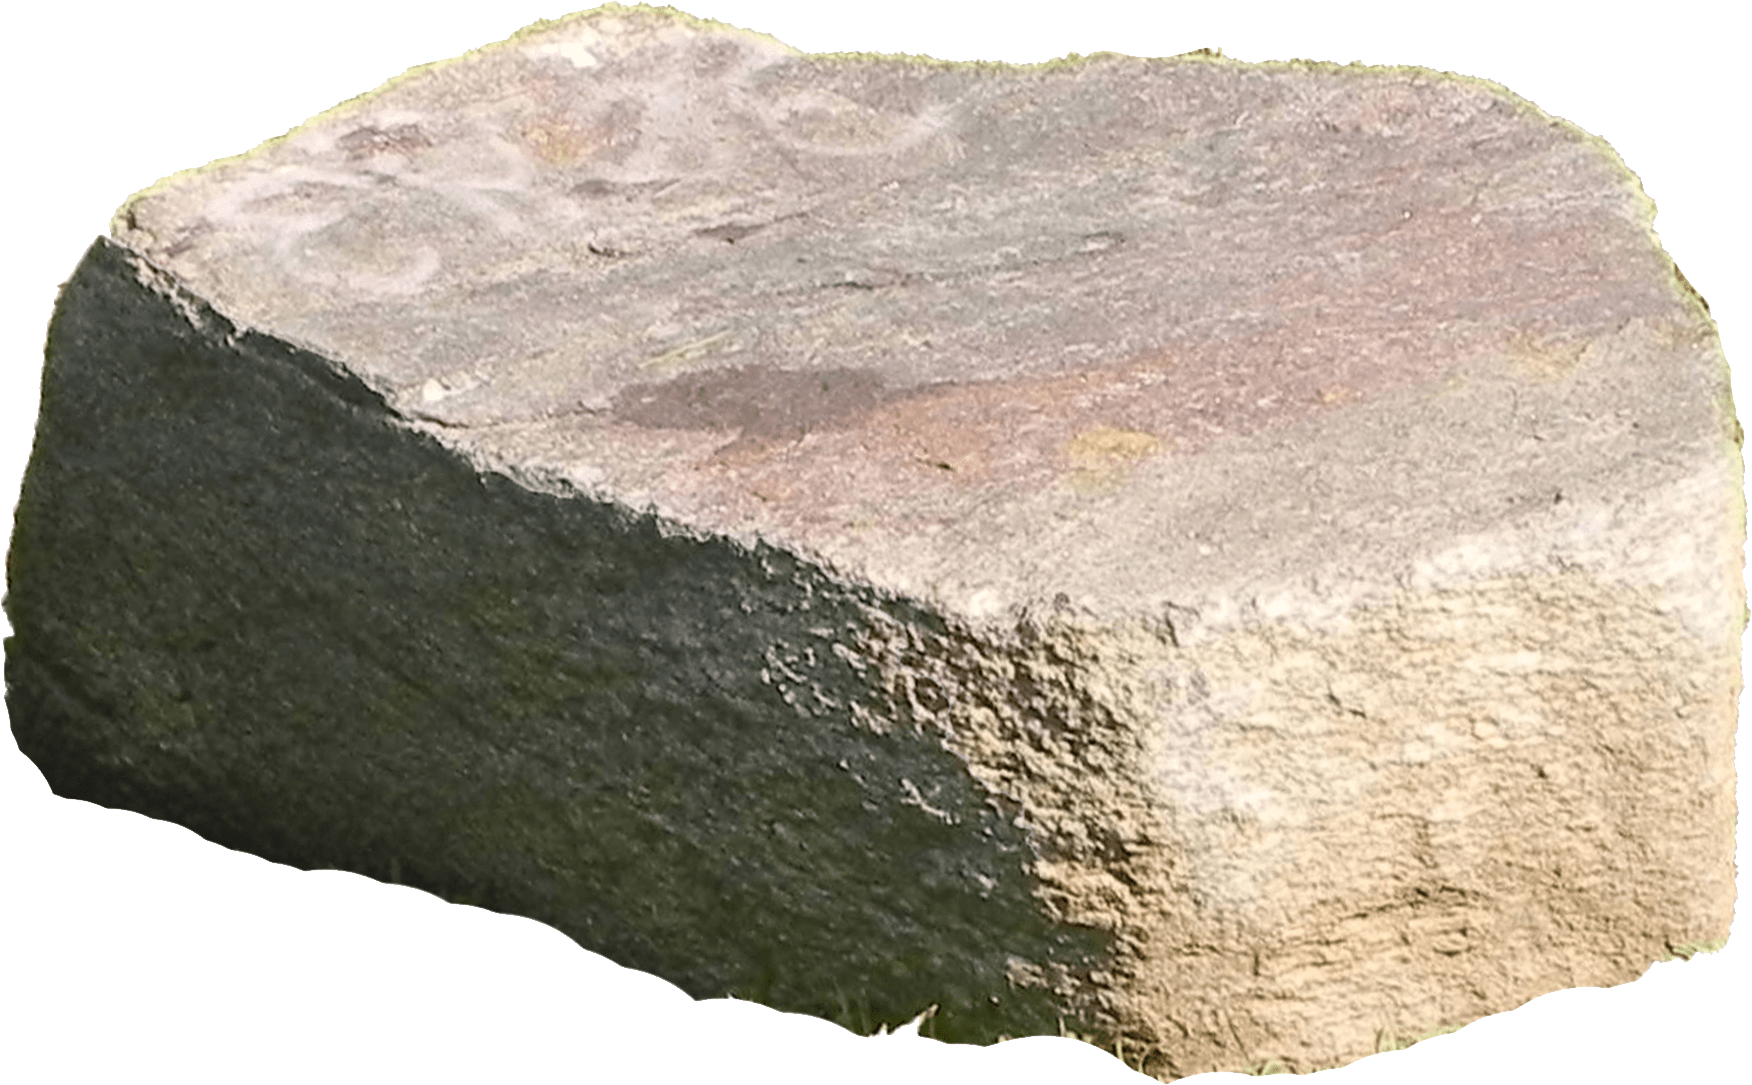 Clipart rock stone. Large under the sun